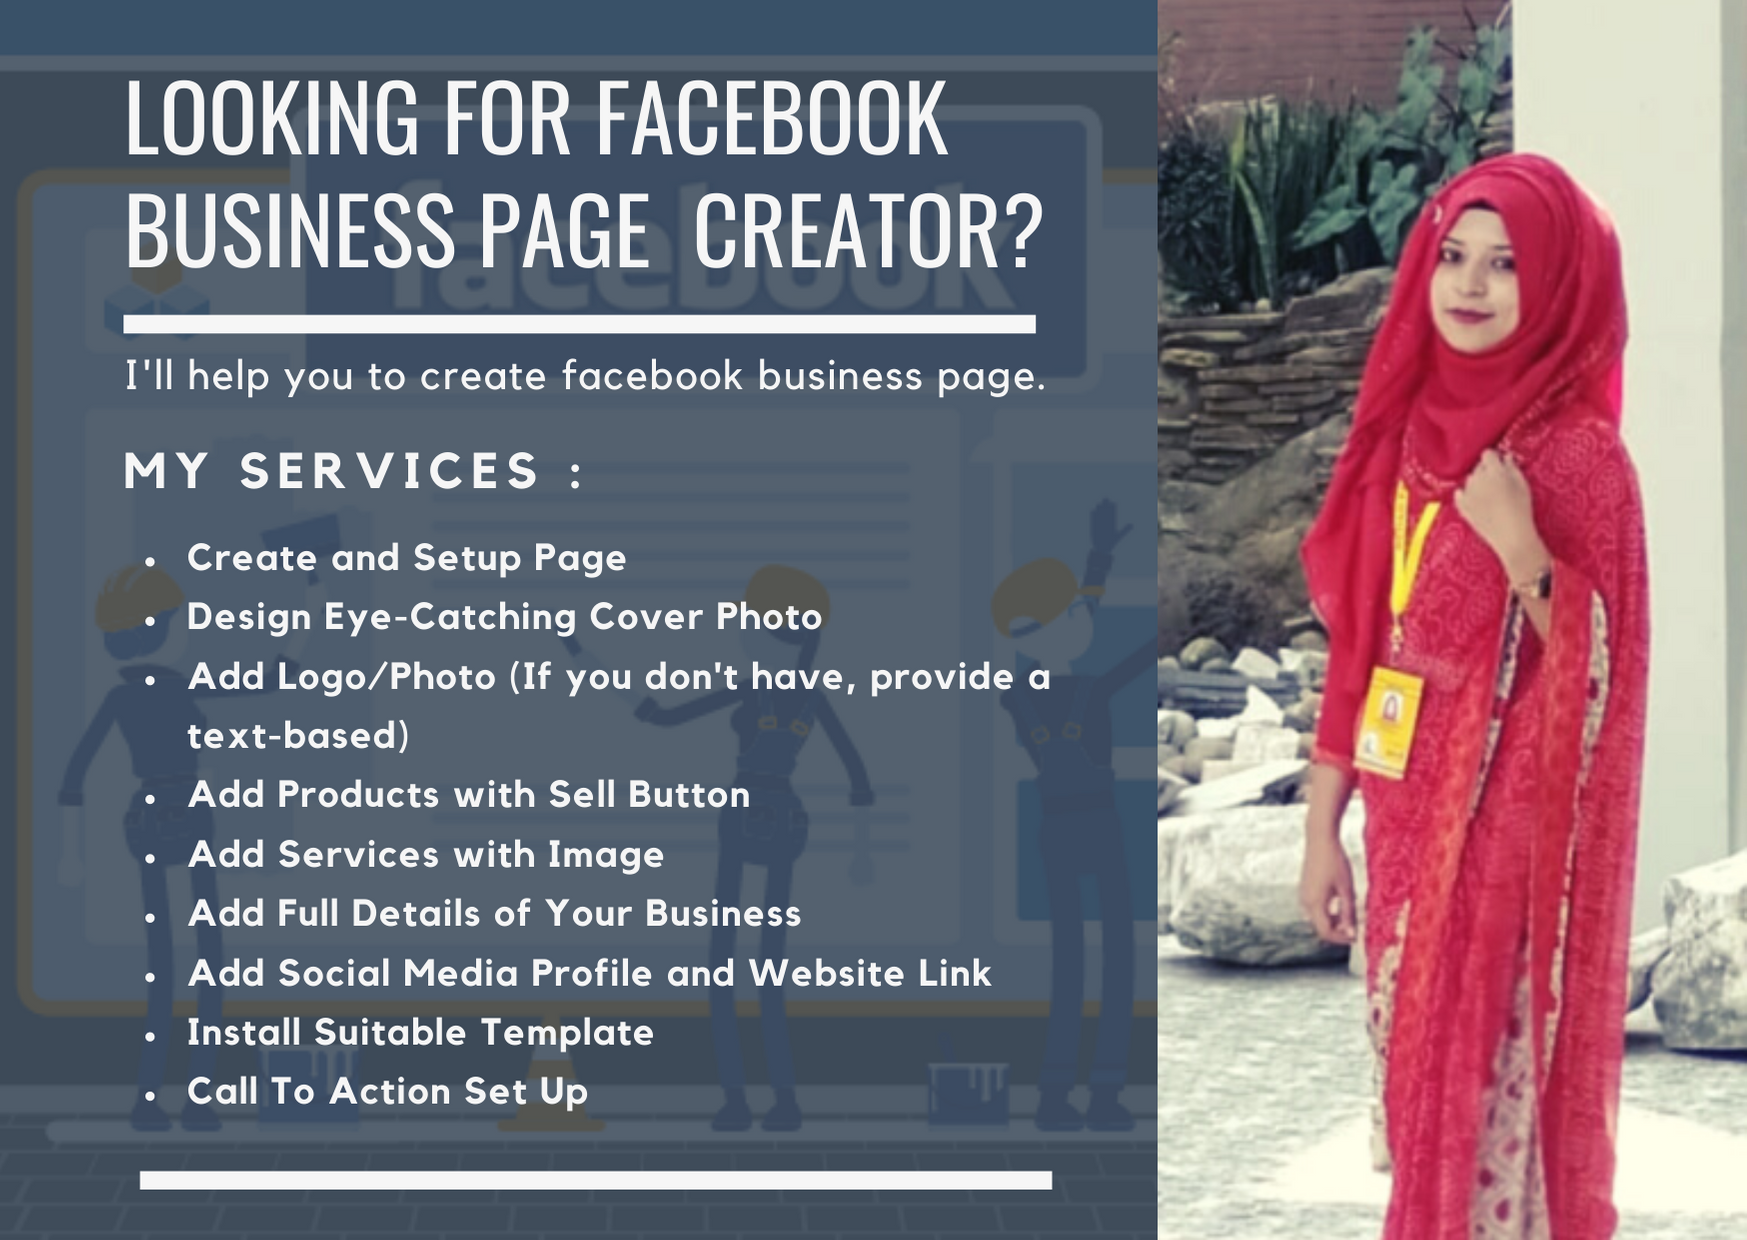 I will create and setup your Facebook Business Page within 24 hours